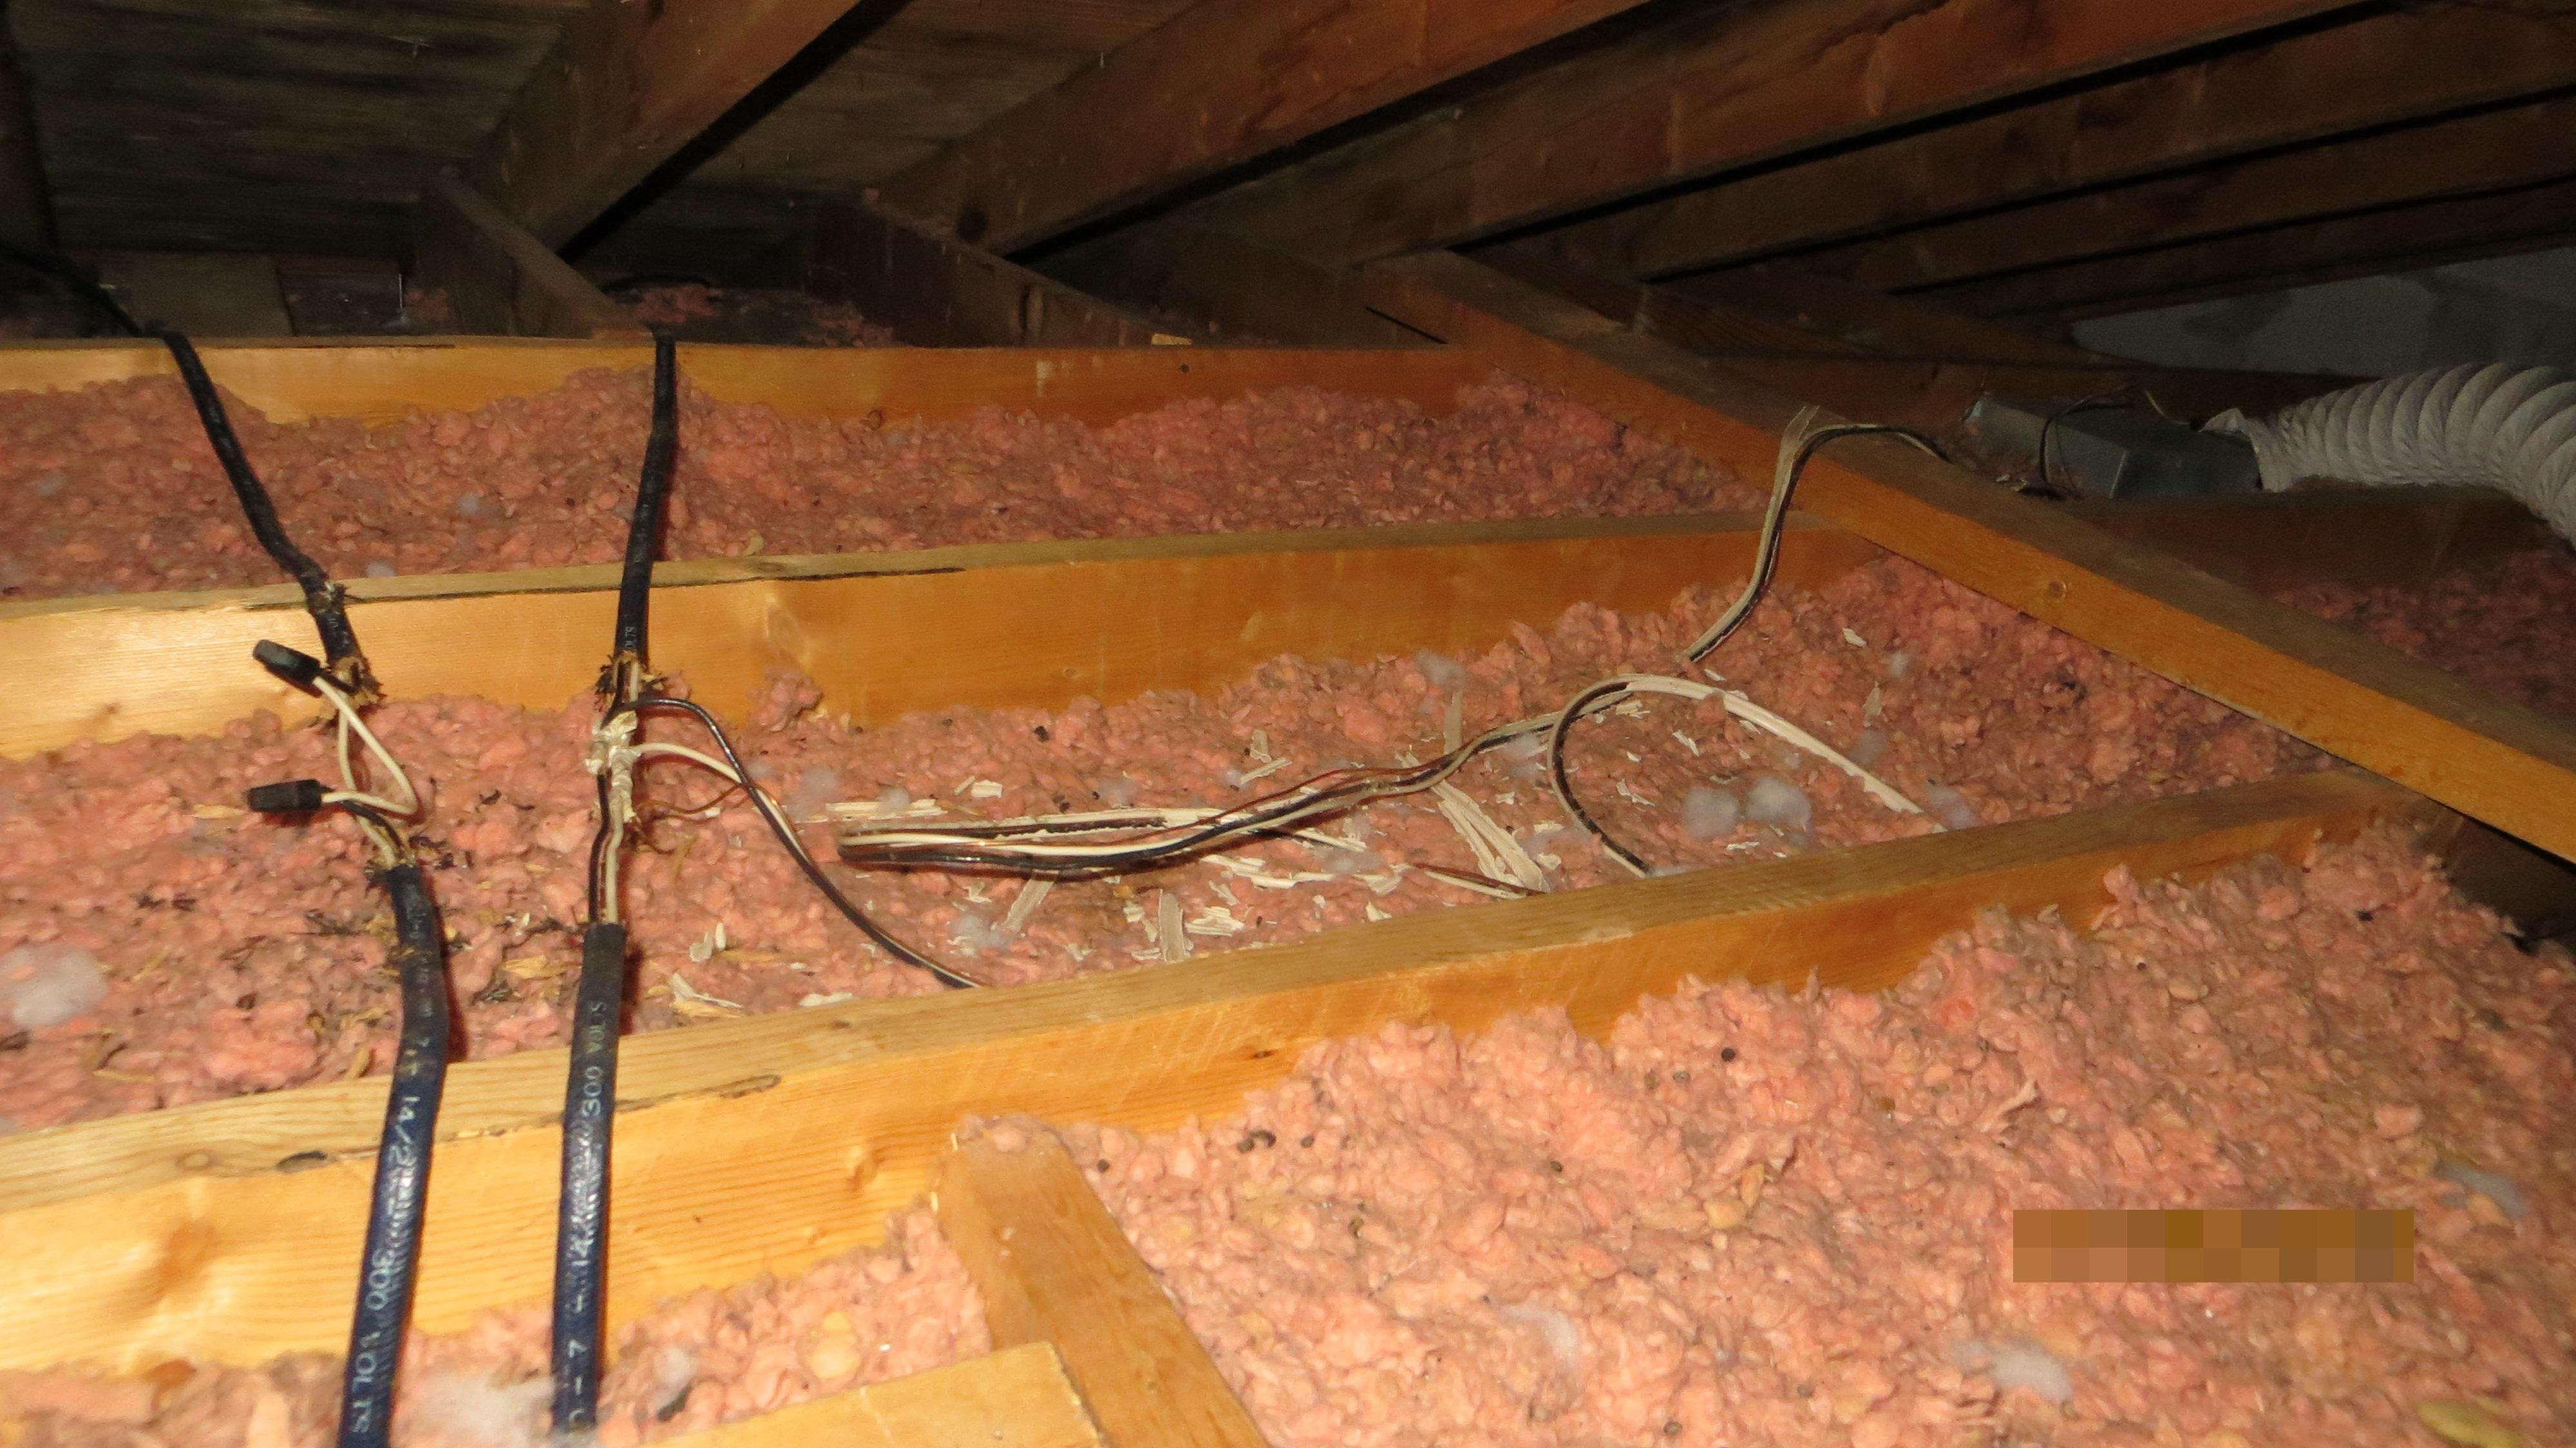 Loose wiring connections in Attic,fire hazard